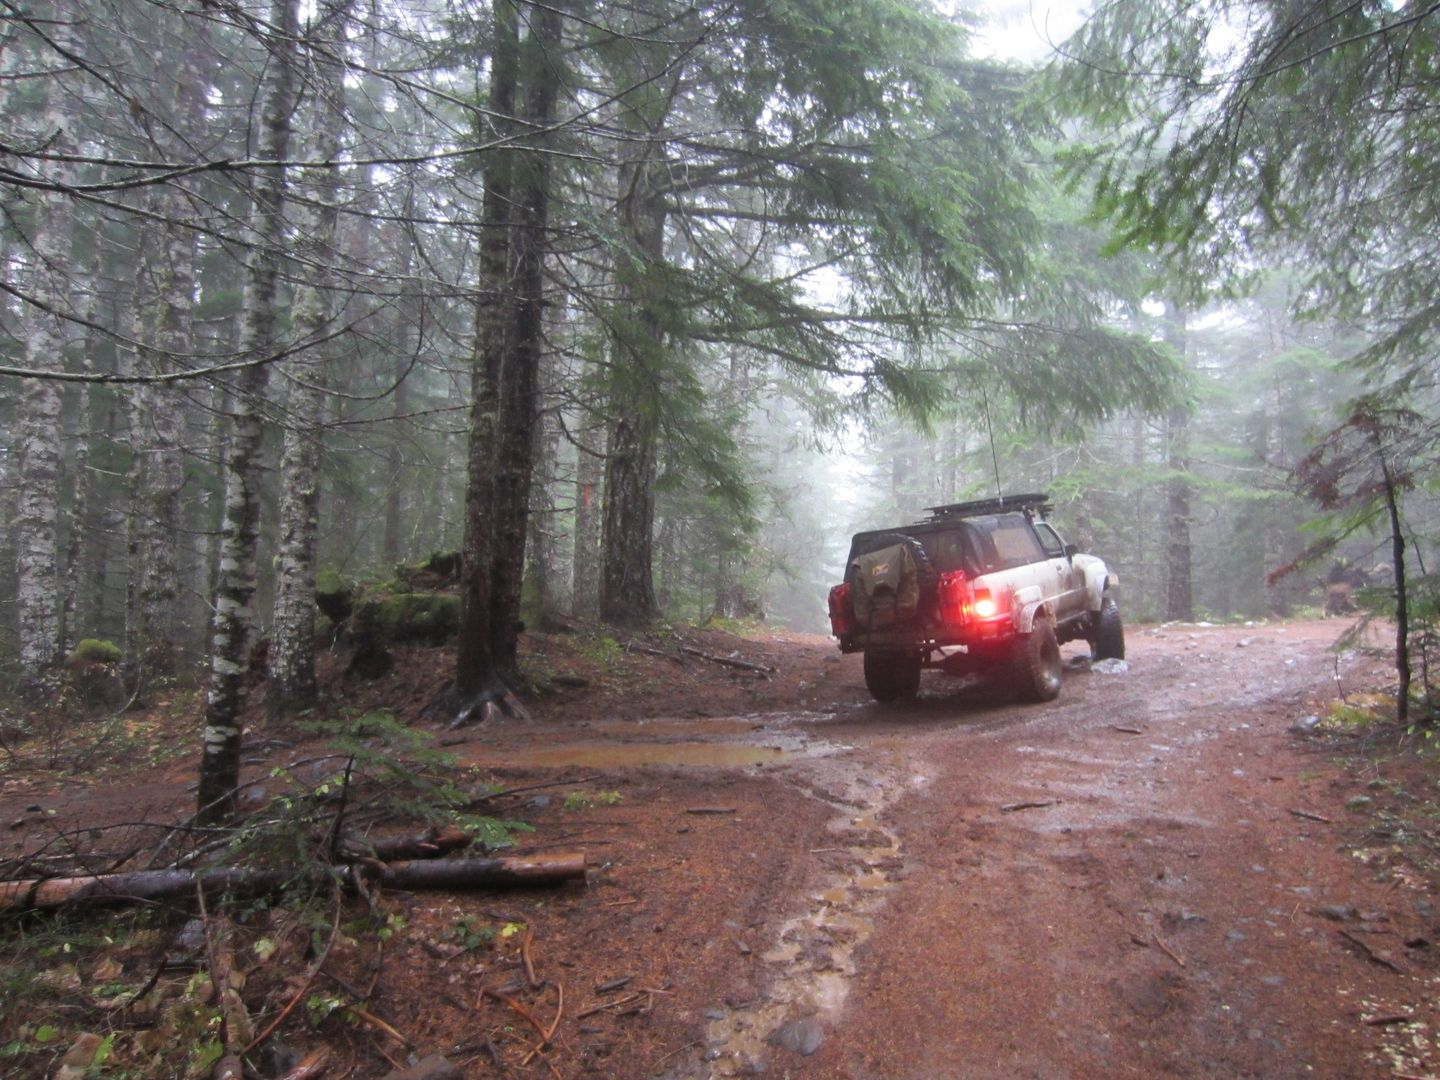 Firebreak Five / Tillamook State Forest - Waypoint 10: Continue Straight -- Other Path Goes Back to Waypoint 08